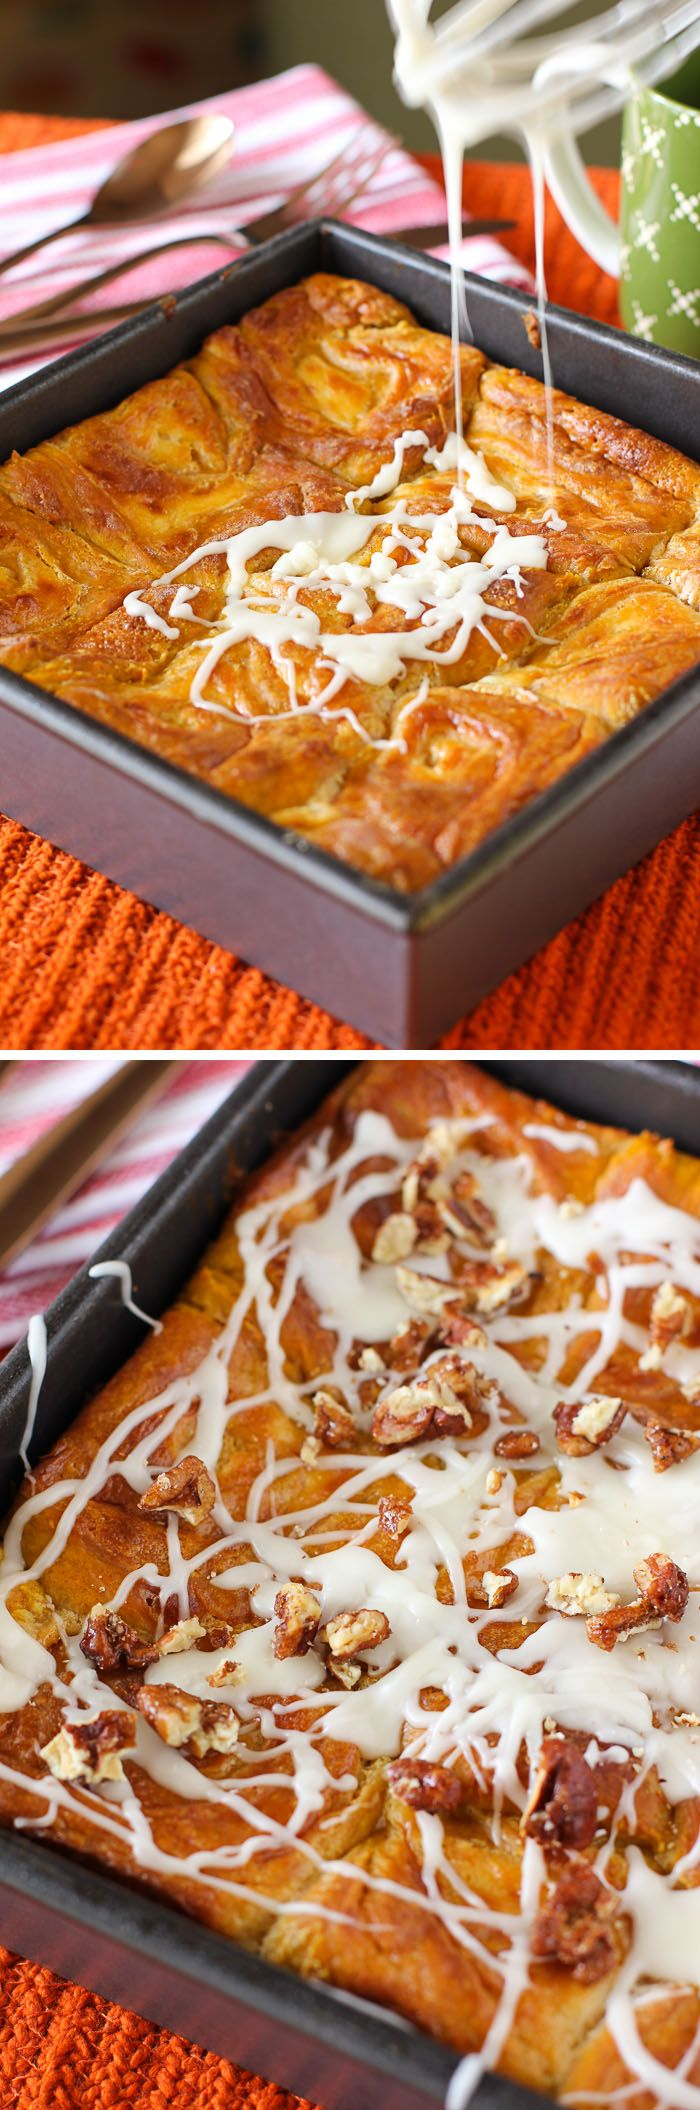 Pumpkin Cheesecake Cinnamon Rolls: They start with a pumpkin yeast dough that gets filled with a thick cheesecake mixture before being rolled up, baked, glazed, and topped with Maple Candied Pecans! @julieruble